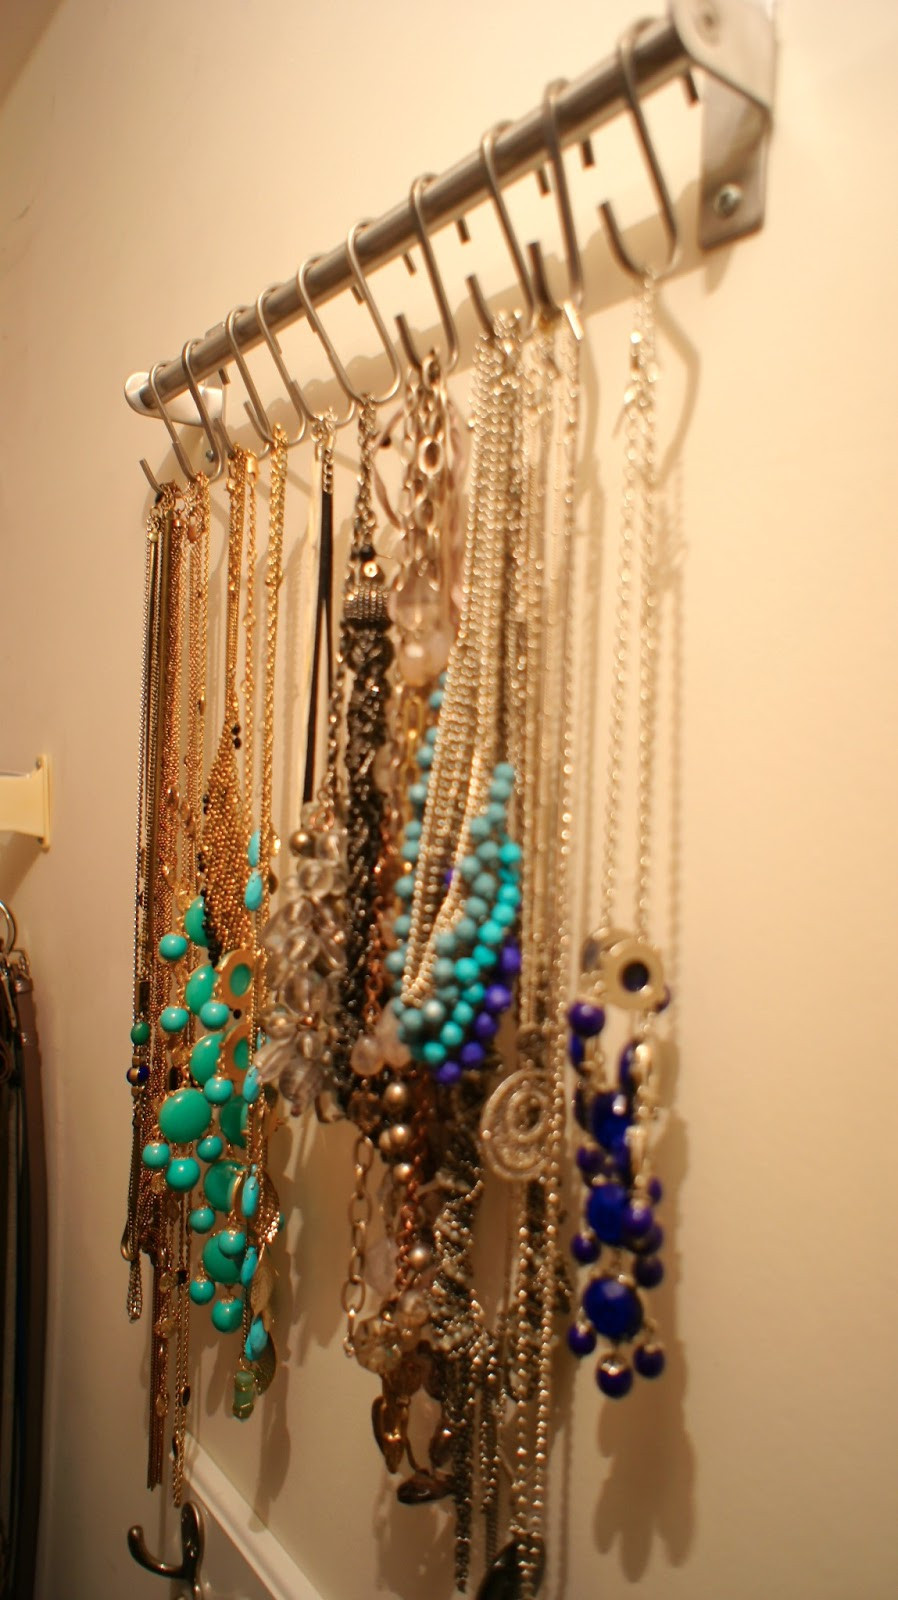 Best ideas about DIY Necklace Organizer . Save or Pin Food Fashion Home Necklace Organizer System Now.